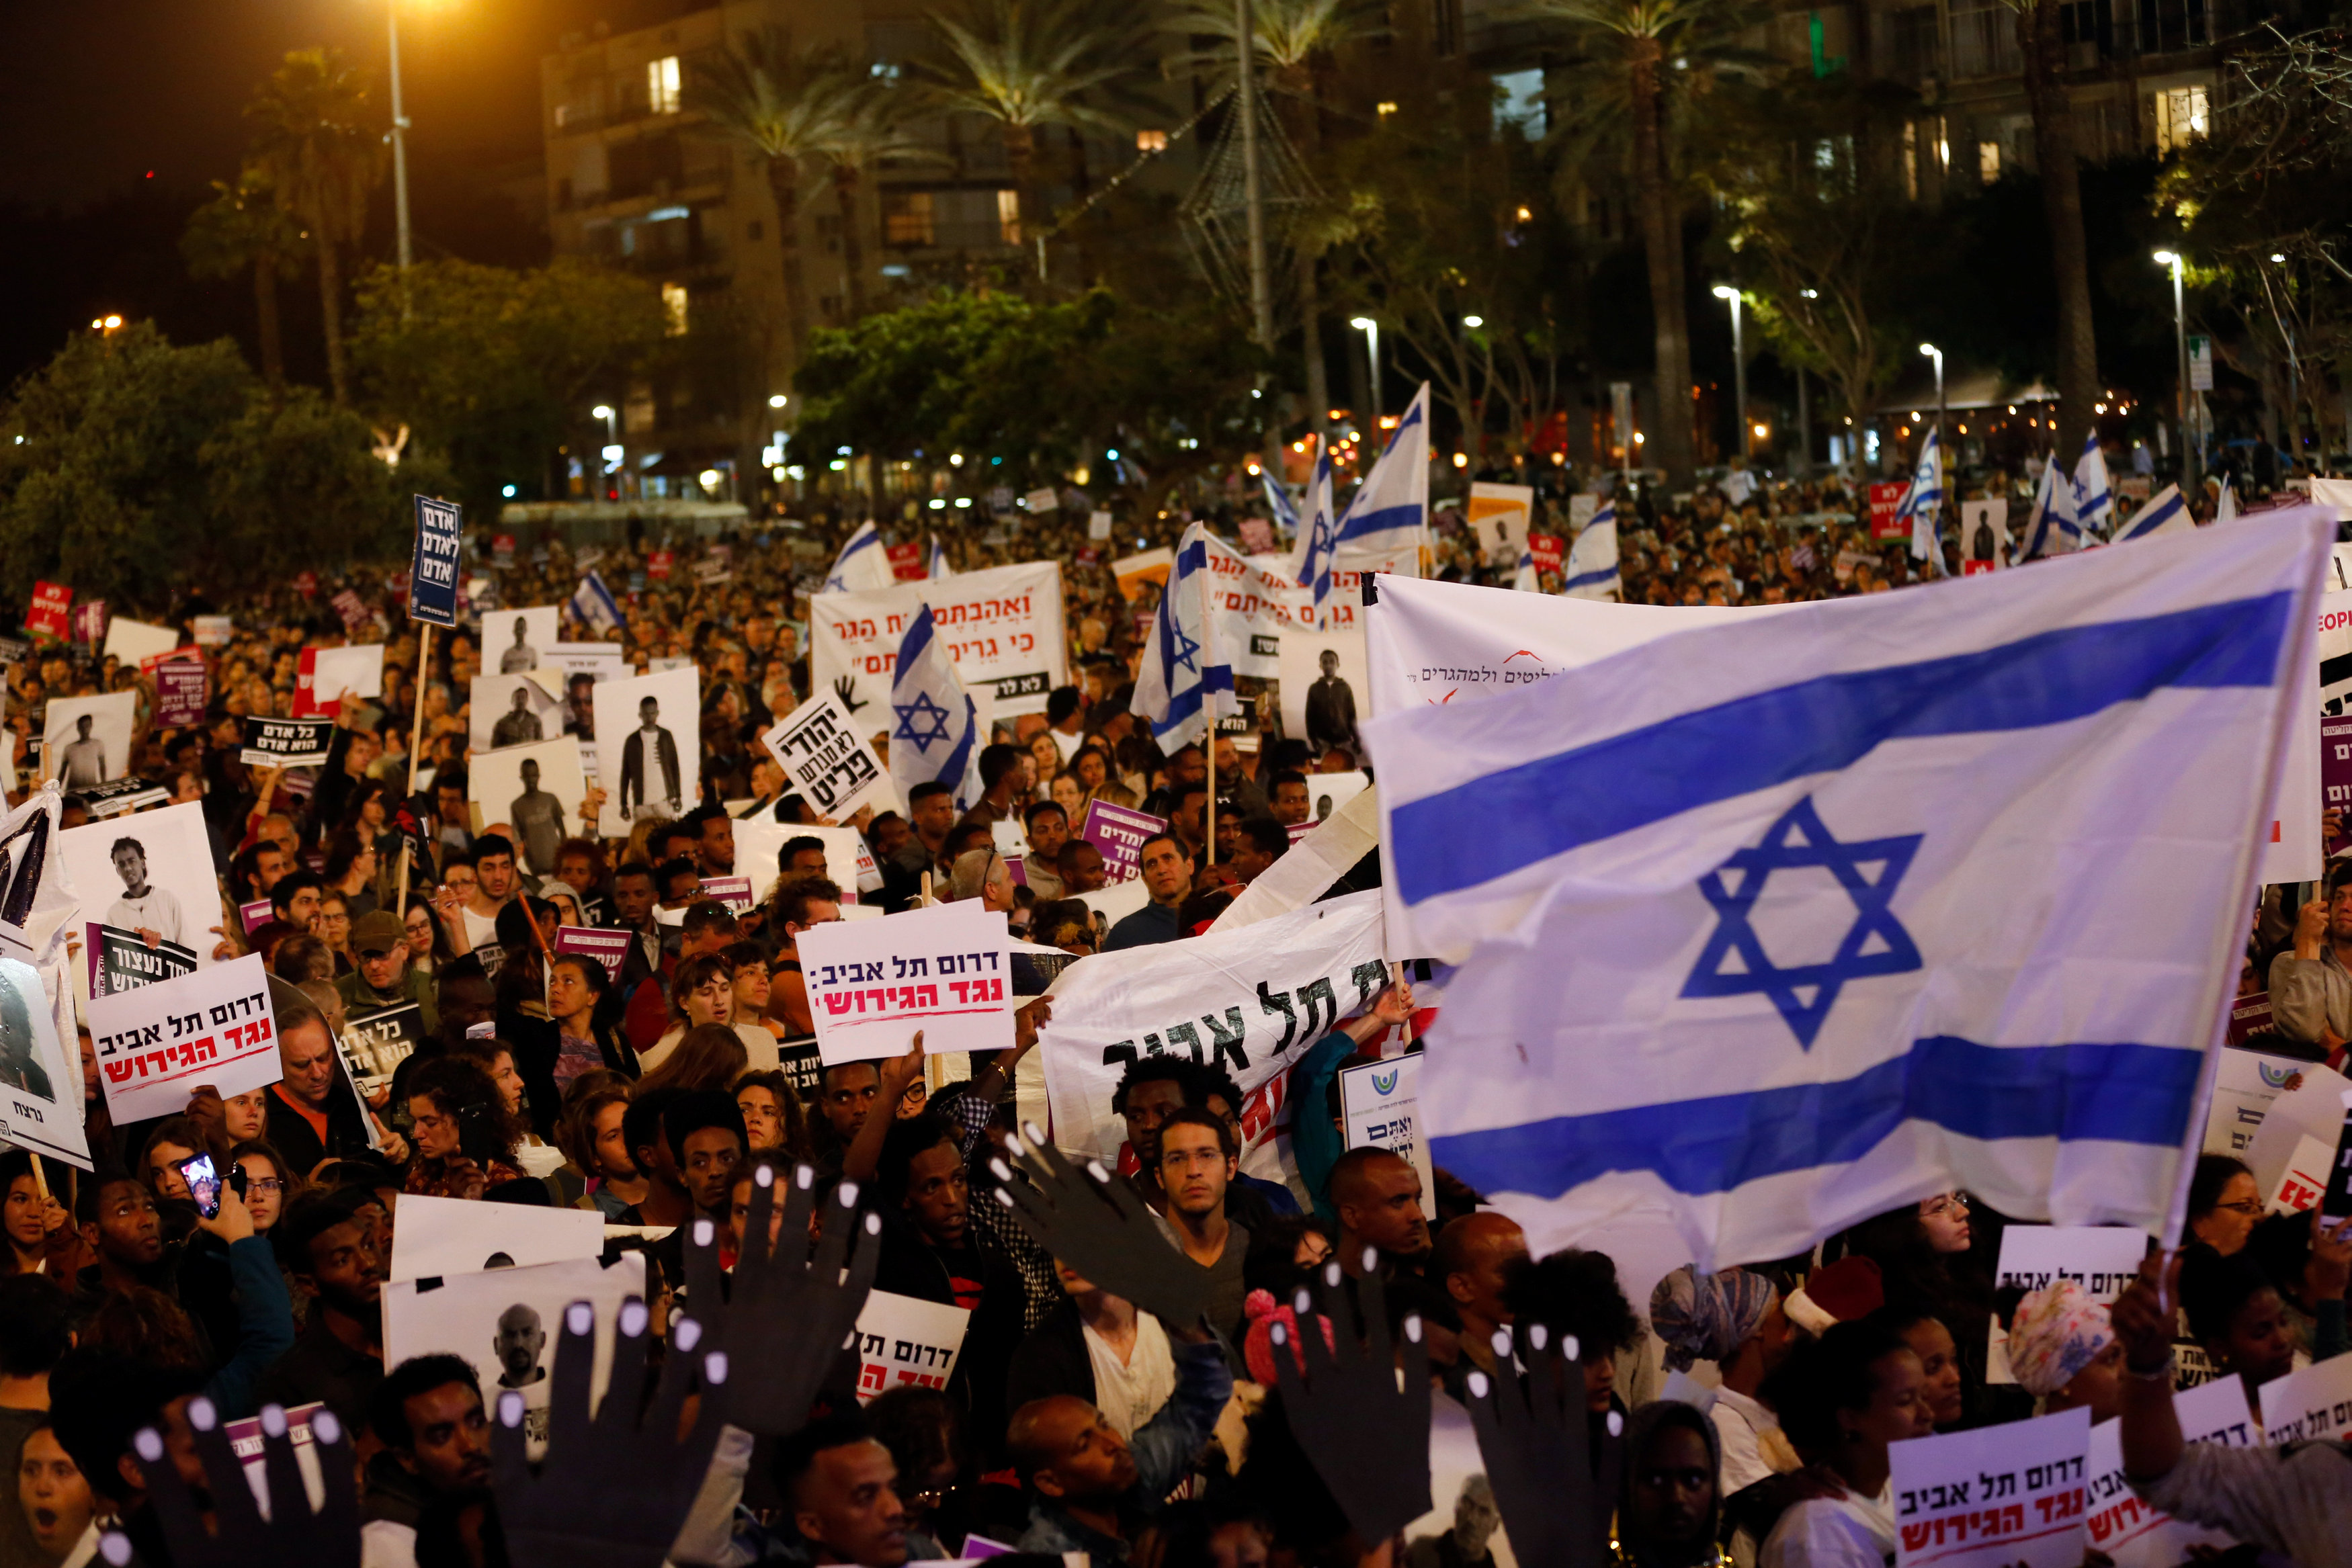 Pepole take part in a protest against the Israeli government's plan to deport African migrants, in Tel Aviv, Israel March 24, 2018. REUTERS/Corinna Ker